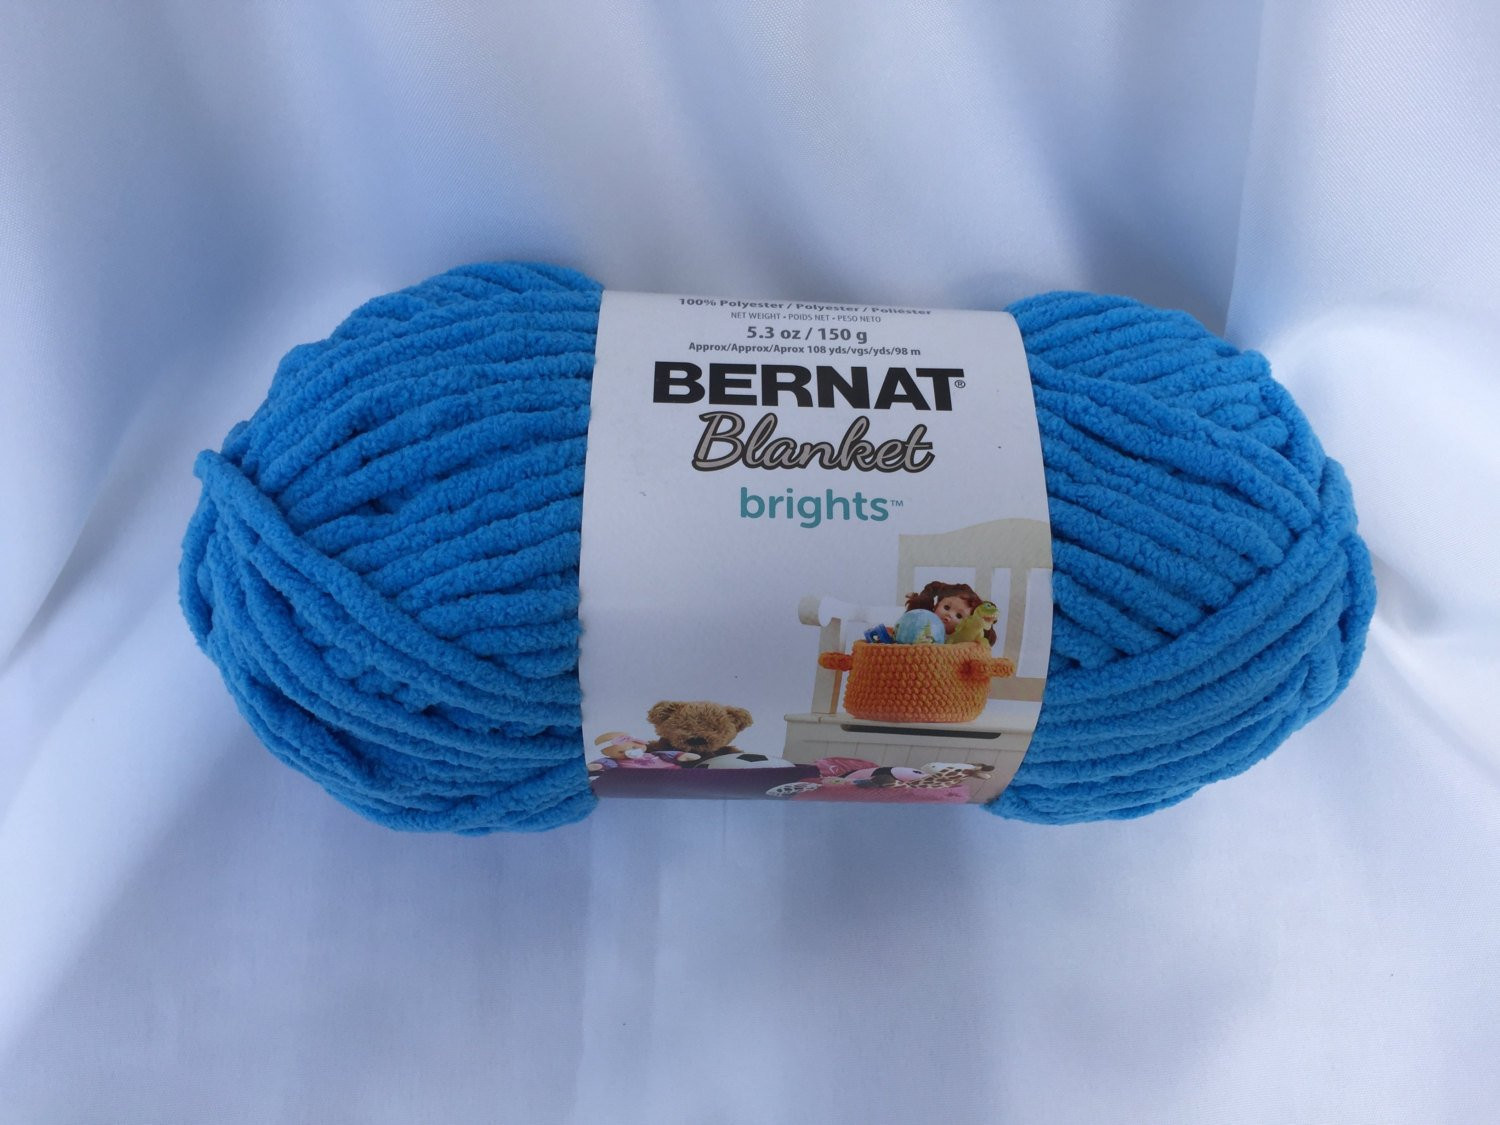 Bernat Blanket Brights Lovely Busy Blue Bernat Blanket Brights 150g 5 3 Oz Super Of Amazing 42 Pictures Bernat Blanket Brights